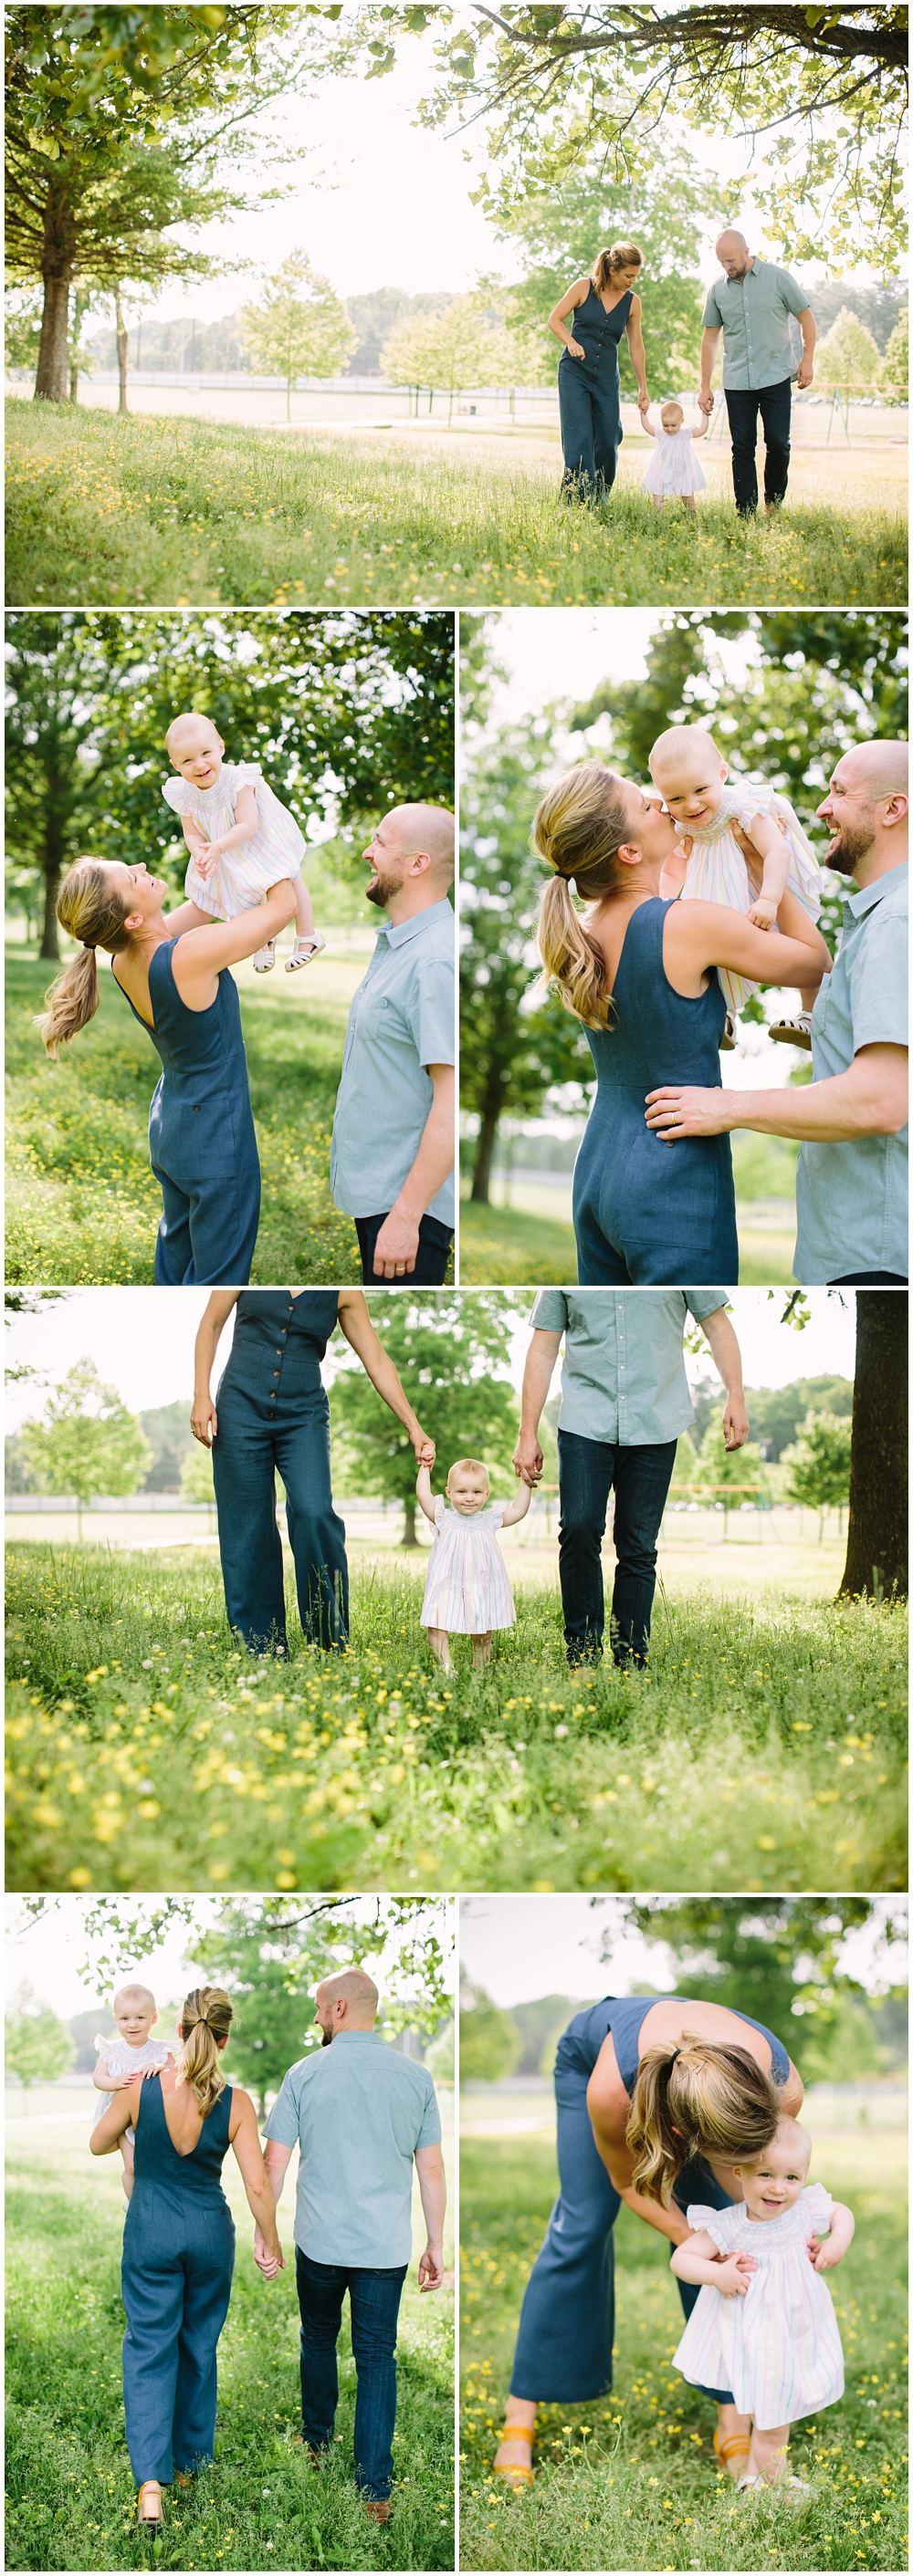 Nashville Family Lifestyle Photos Rachel Moore Photography